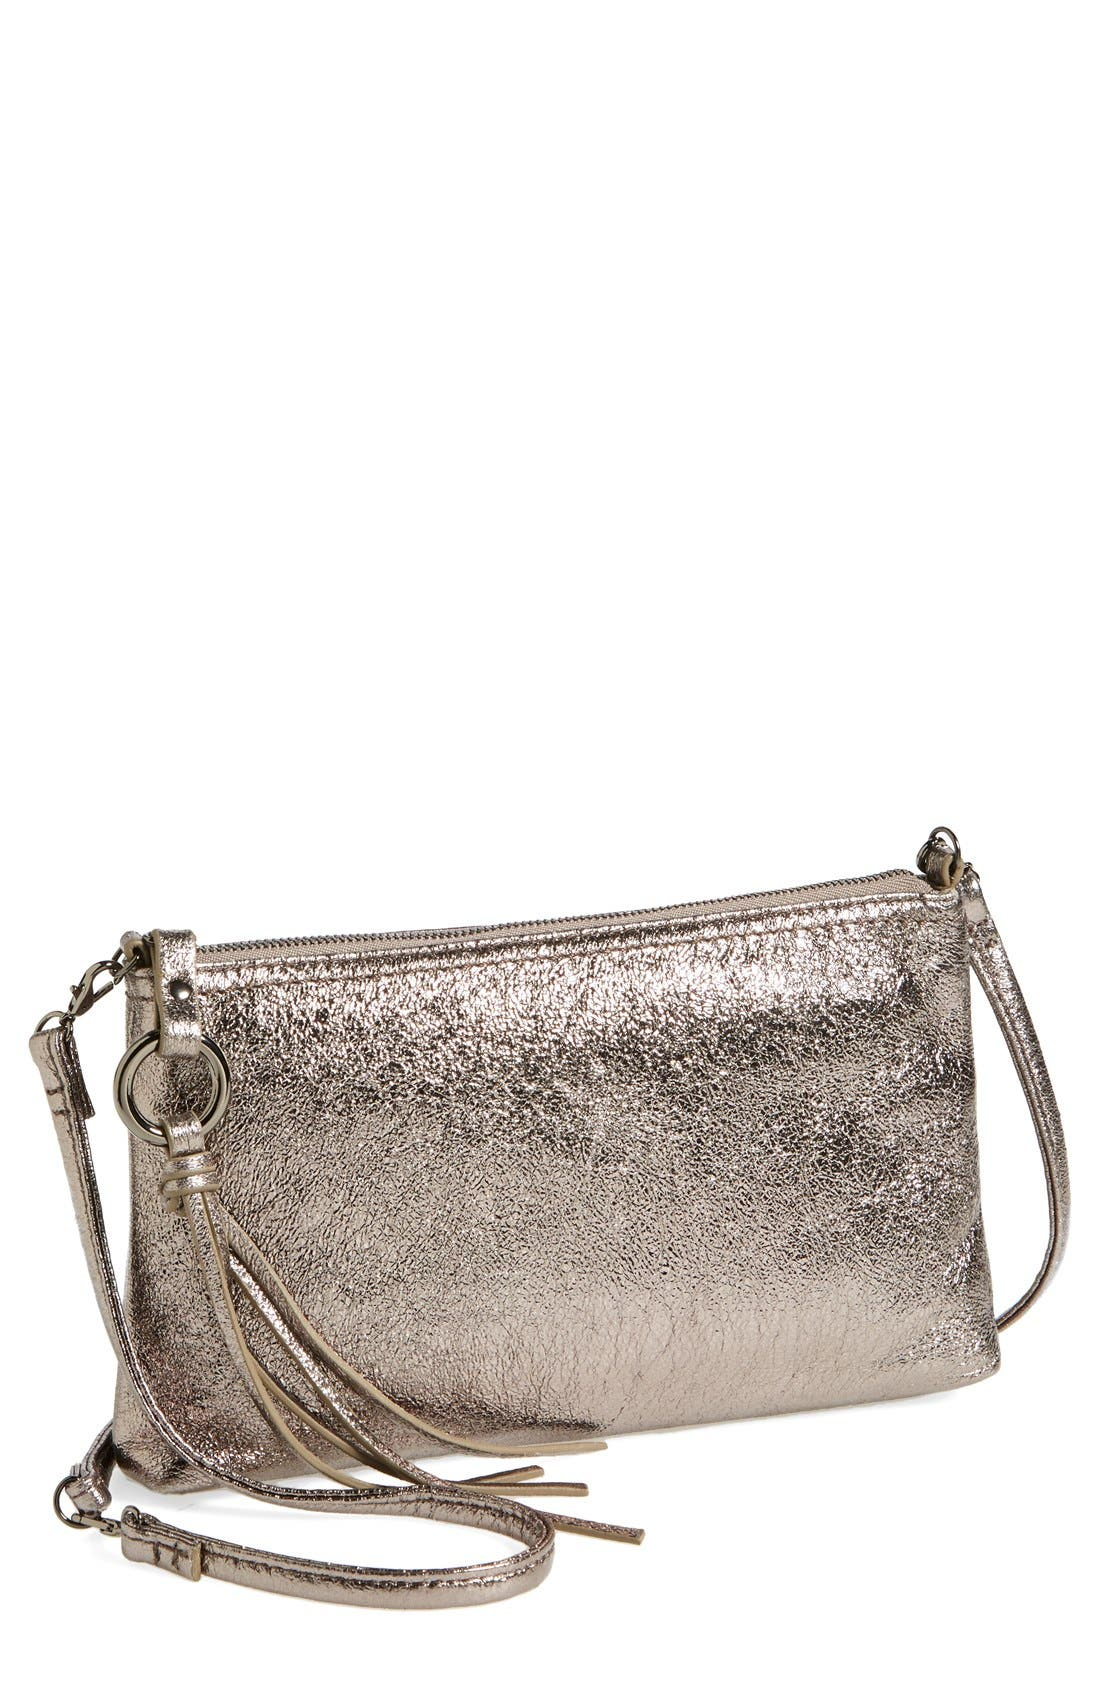 'Darcy' Leather Crossbody Bag,                             Main thumbnail 11, color,